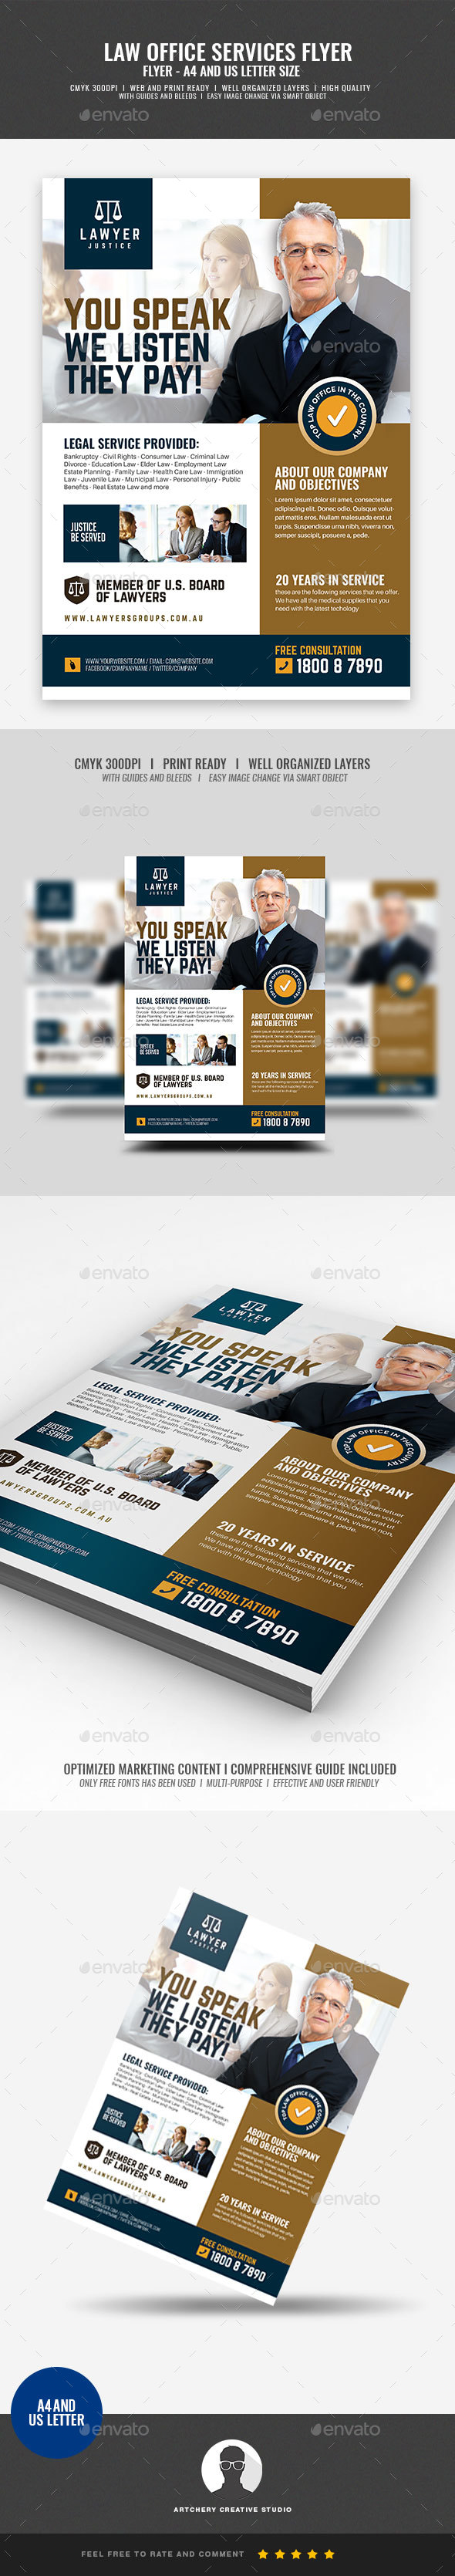 Law Firm and Legal Services Flyer - Corporate Flyers